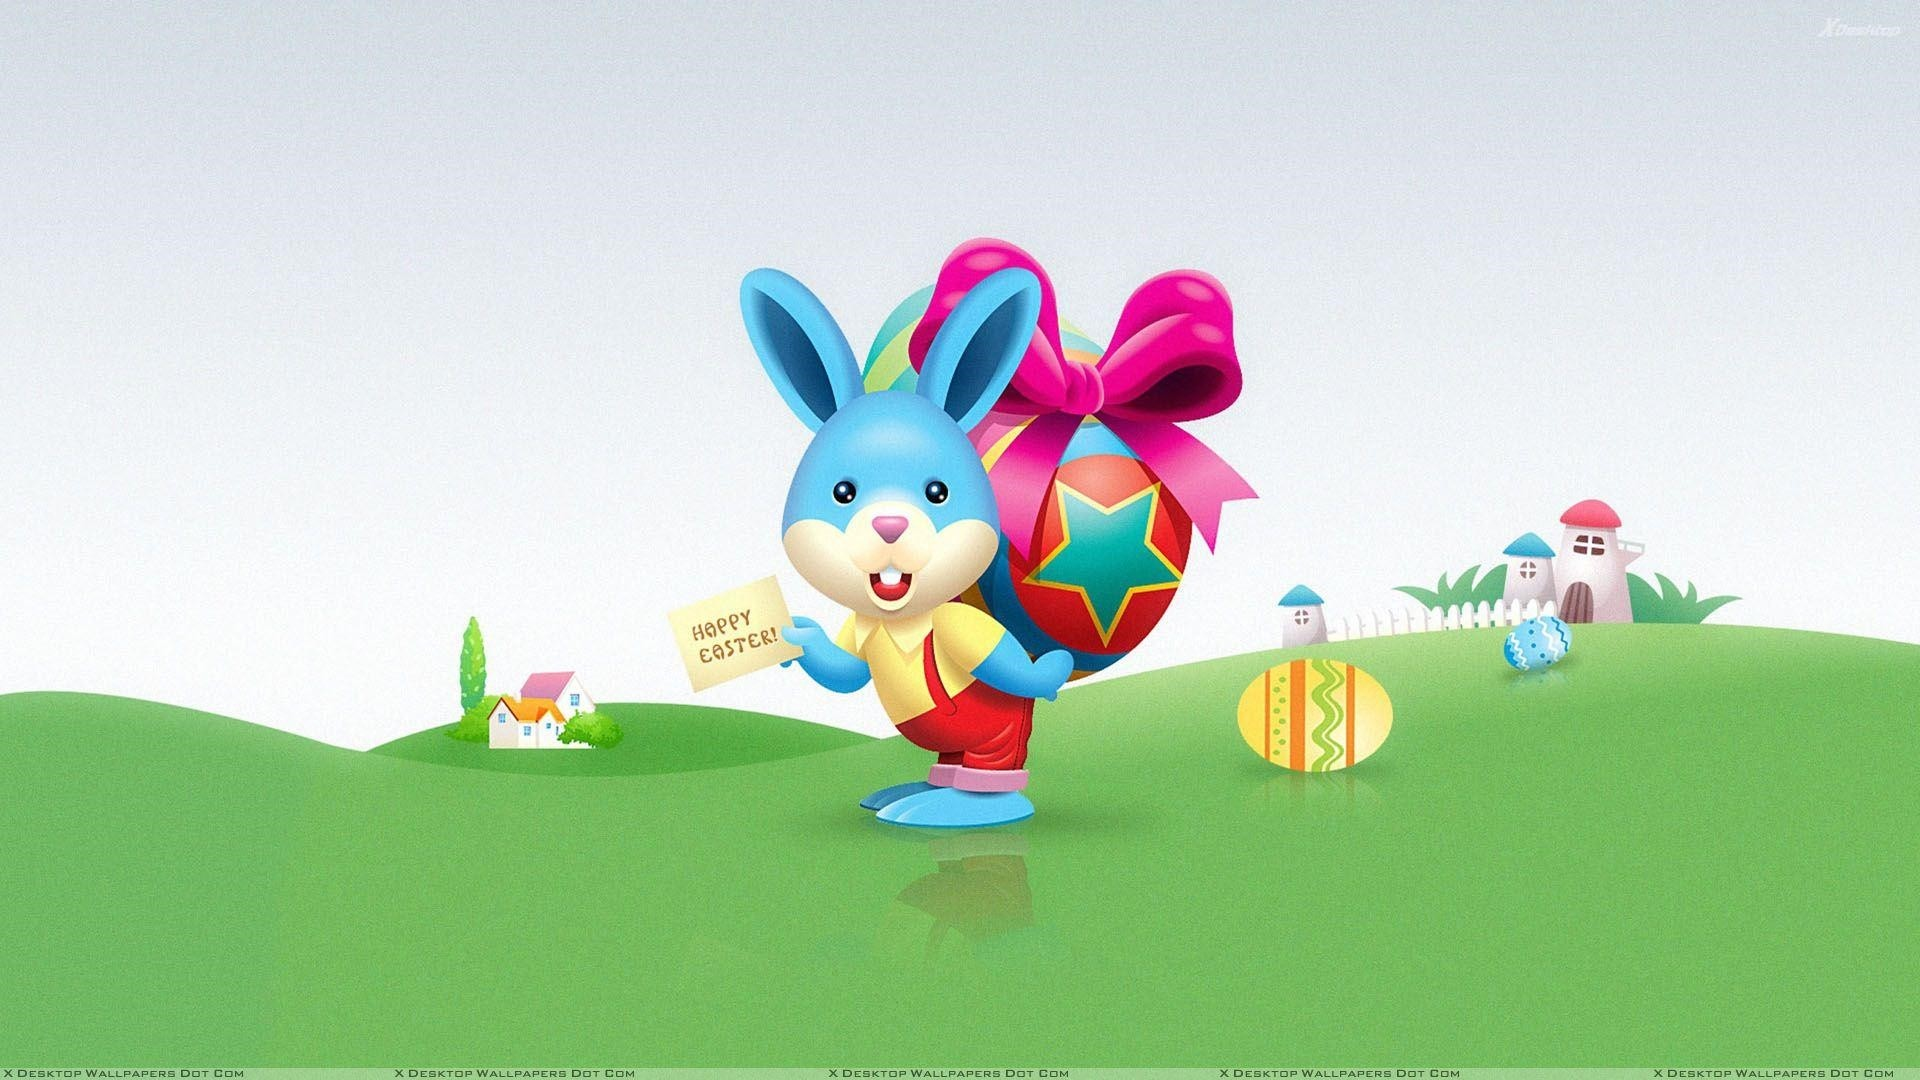 Easter 2020 Wallpaper Free Download